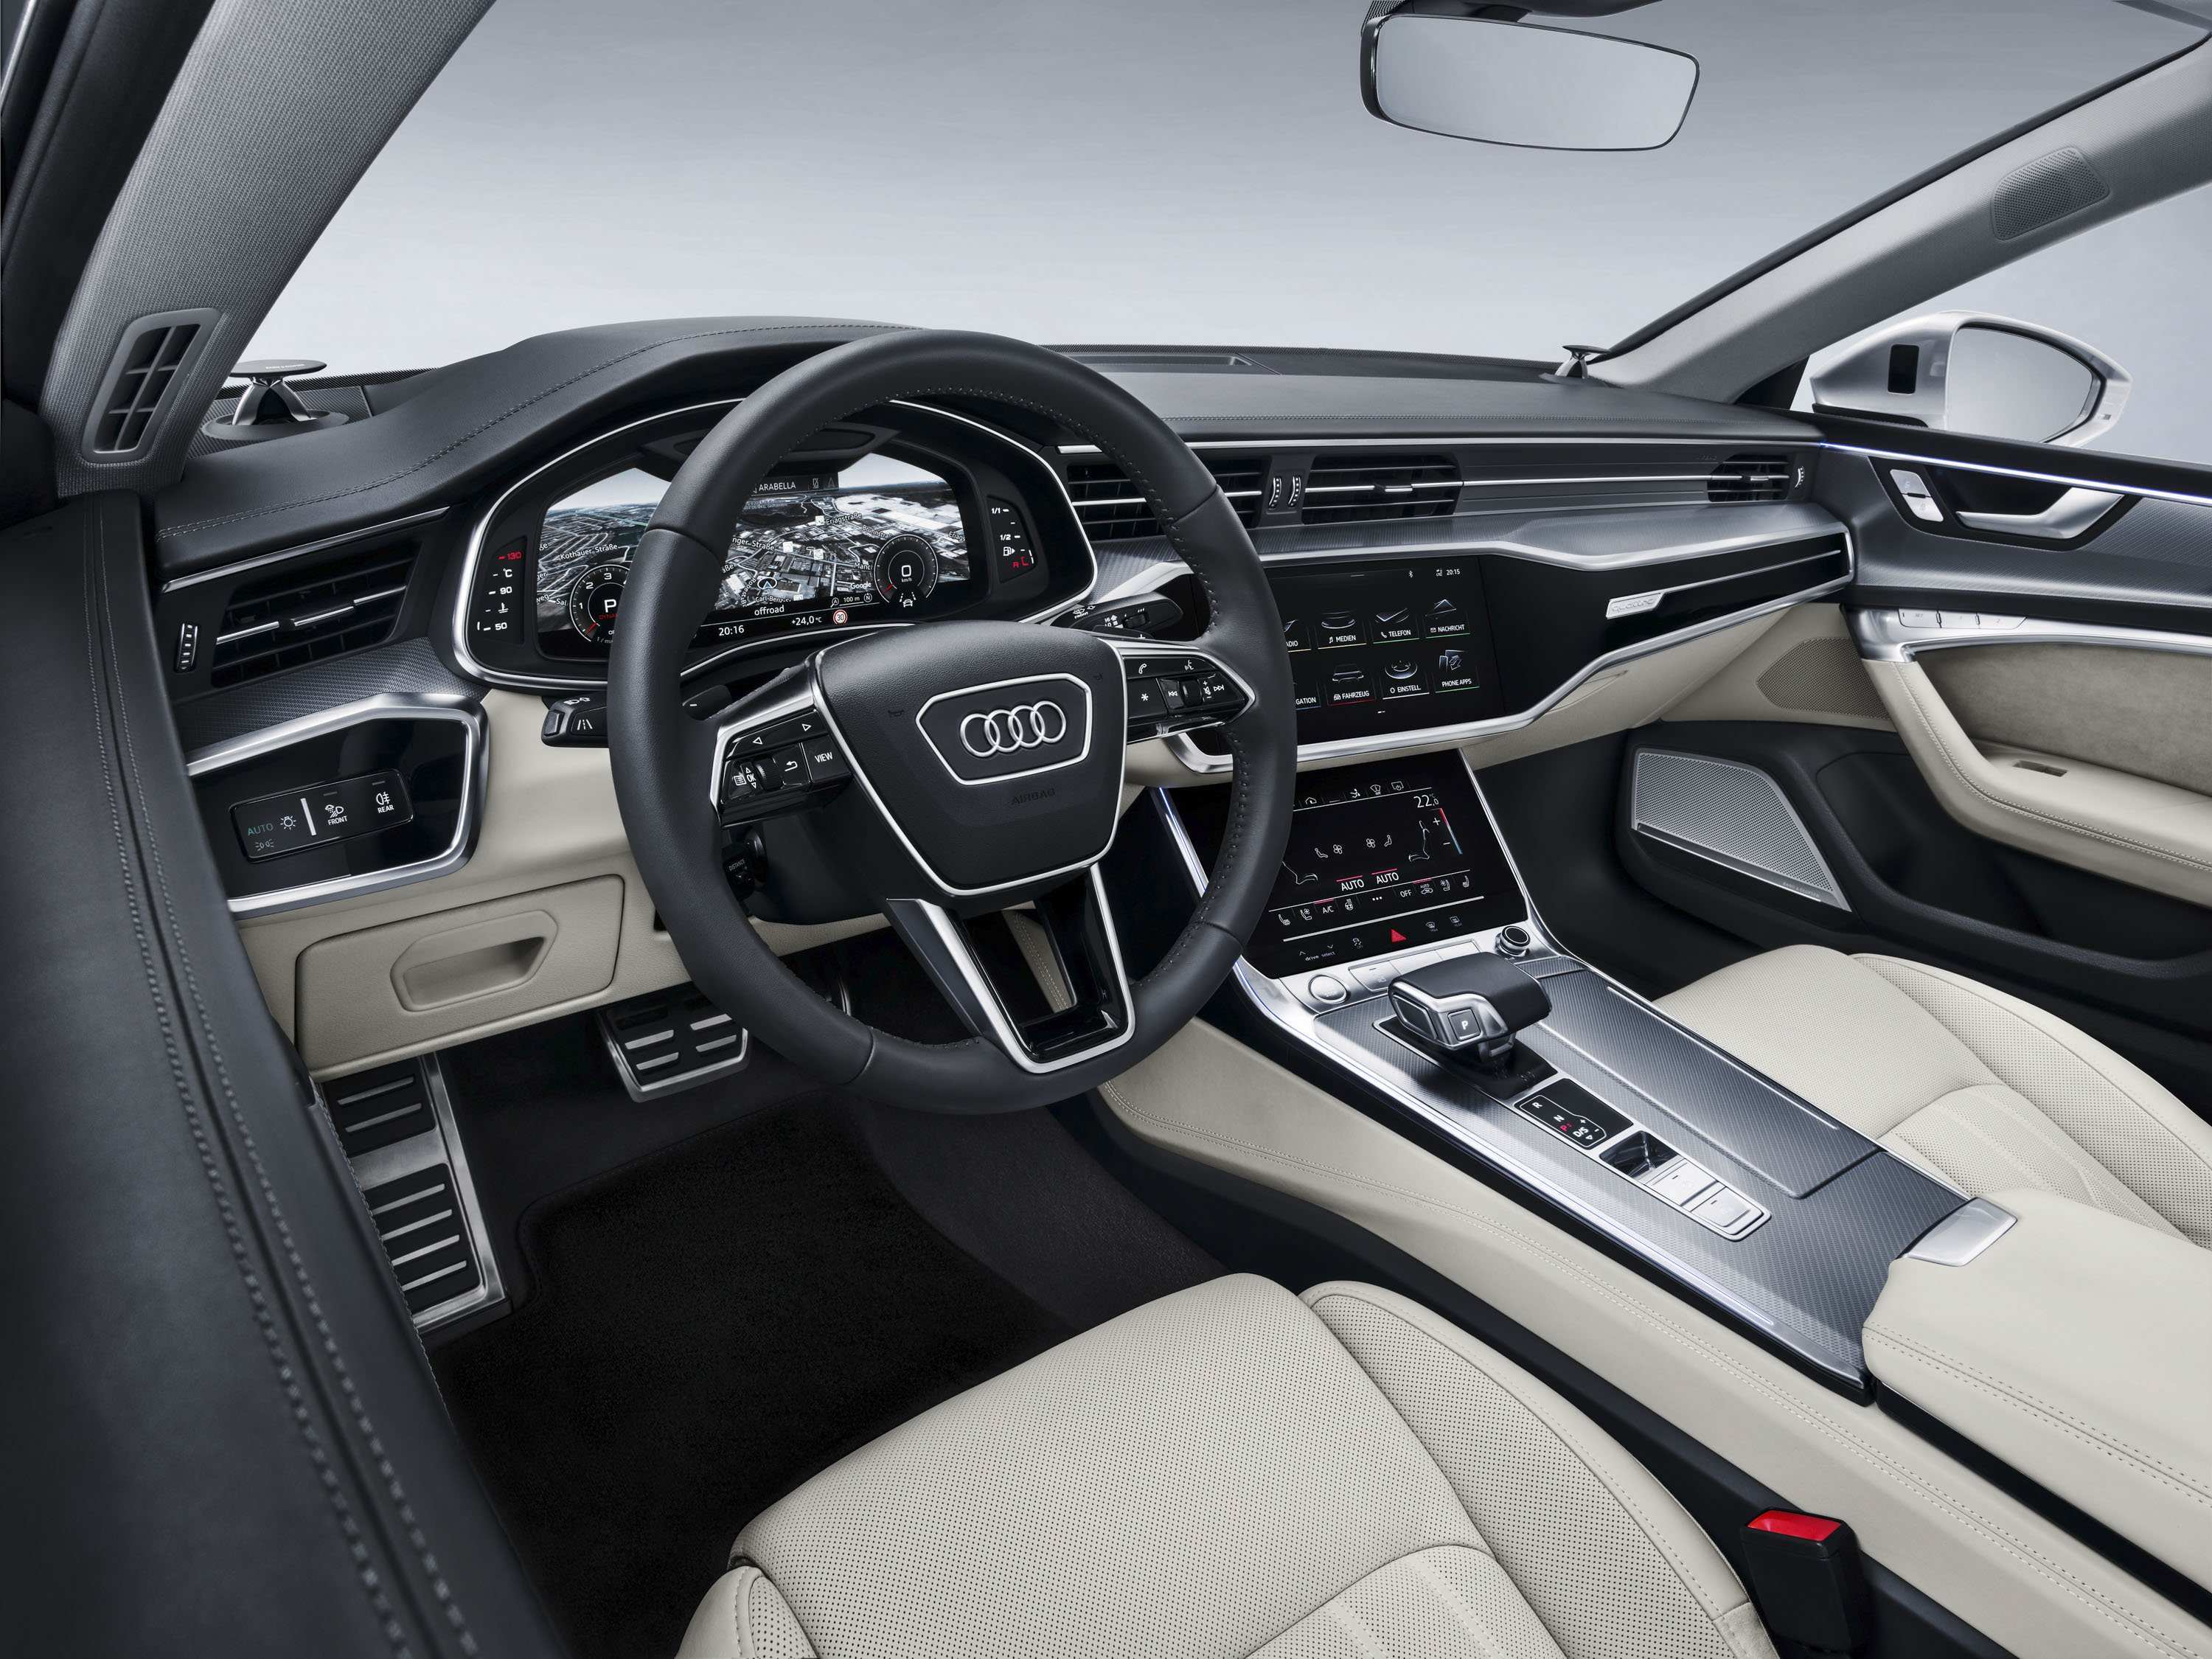 12 Best Review Best 2019 Audi S7 Engine Performance And New Engine Style with Best 2019 Audi S7 Engine Performance And New Engine